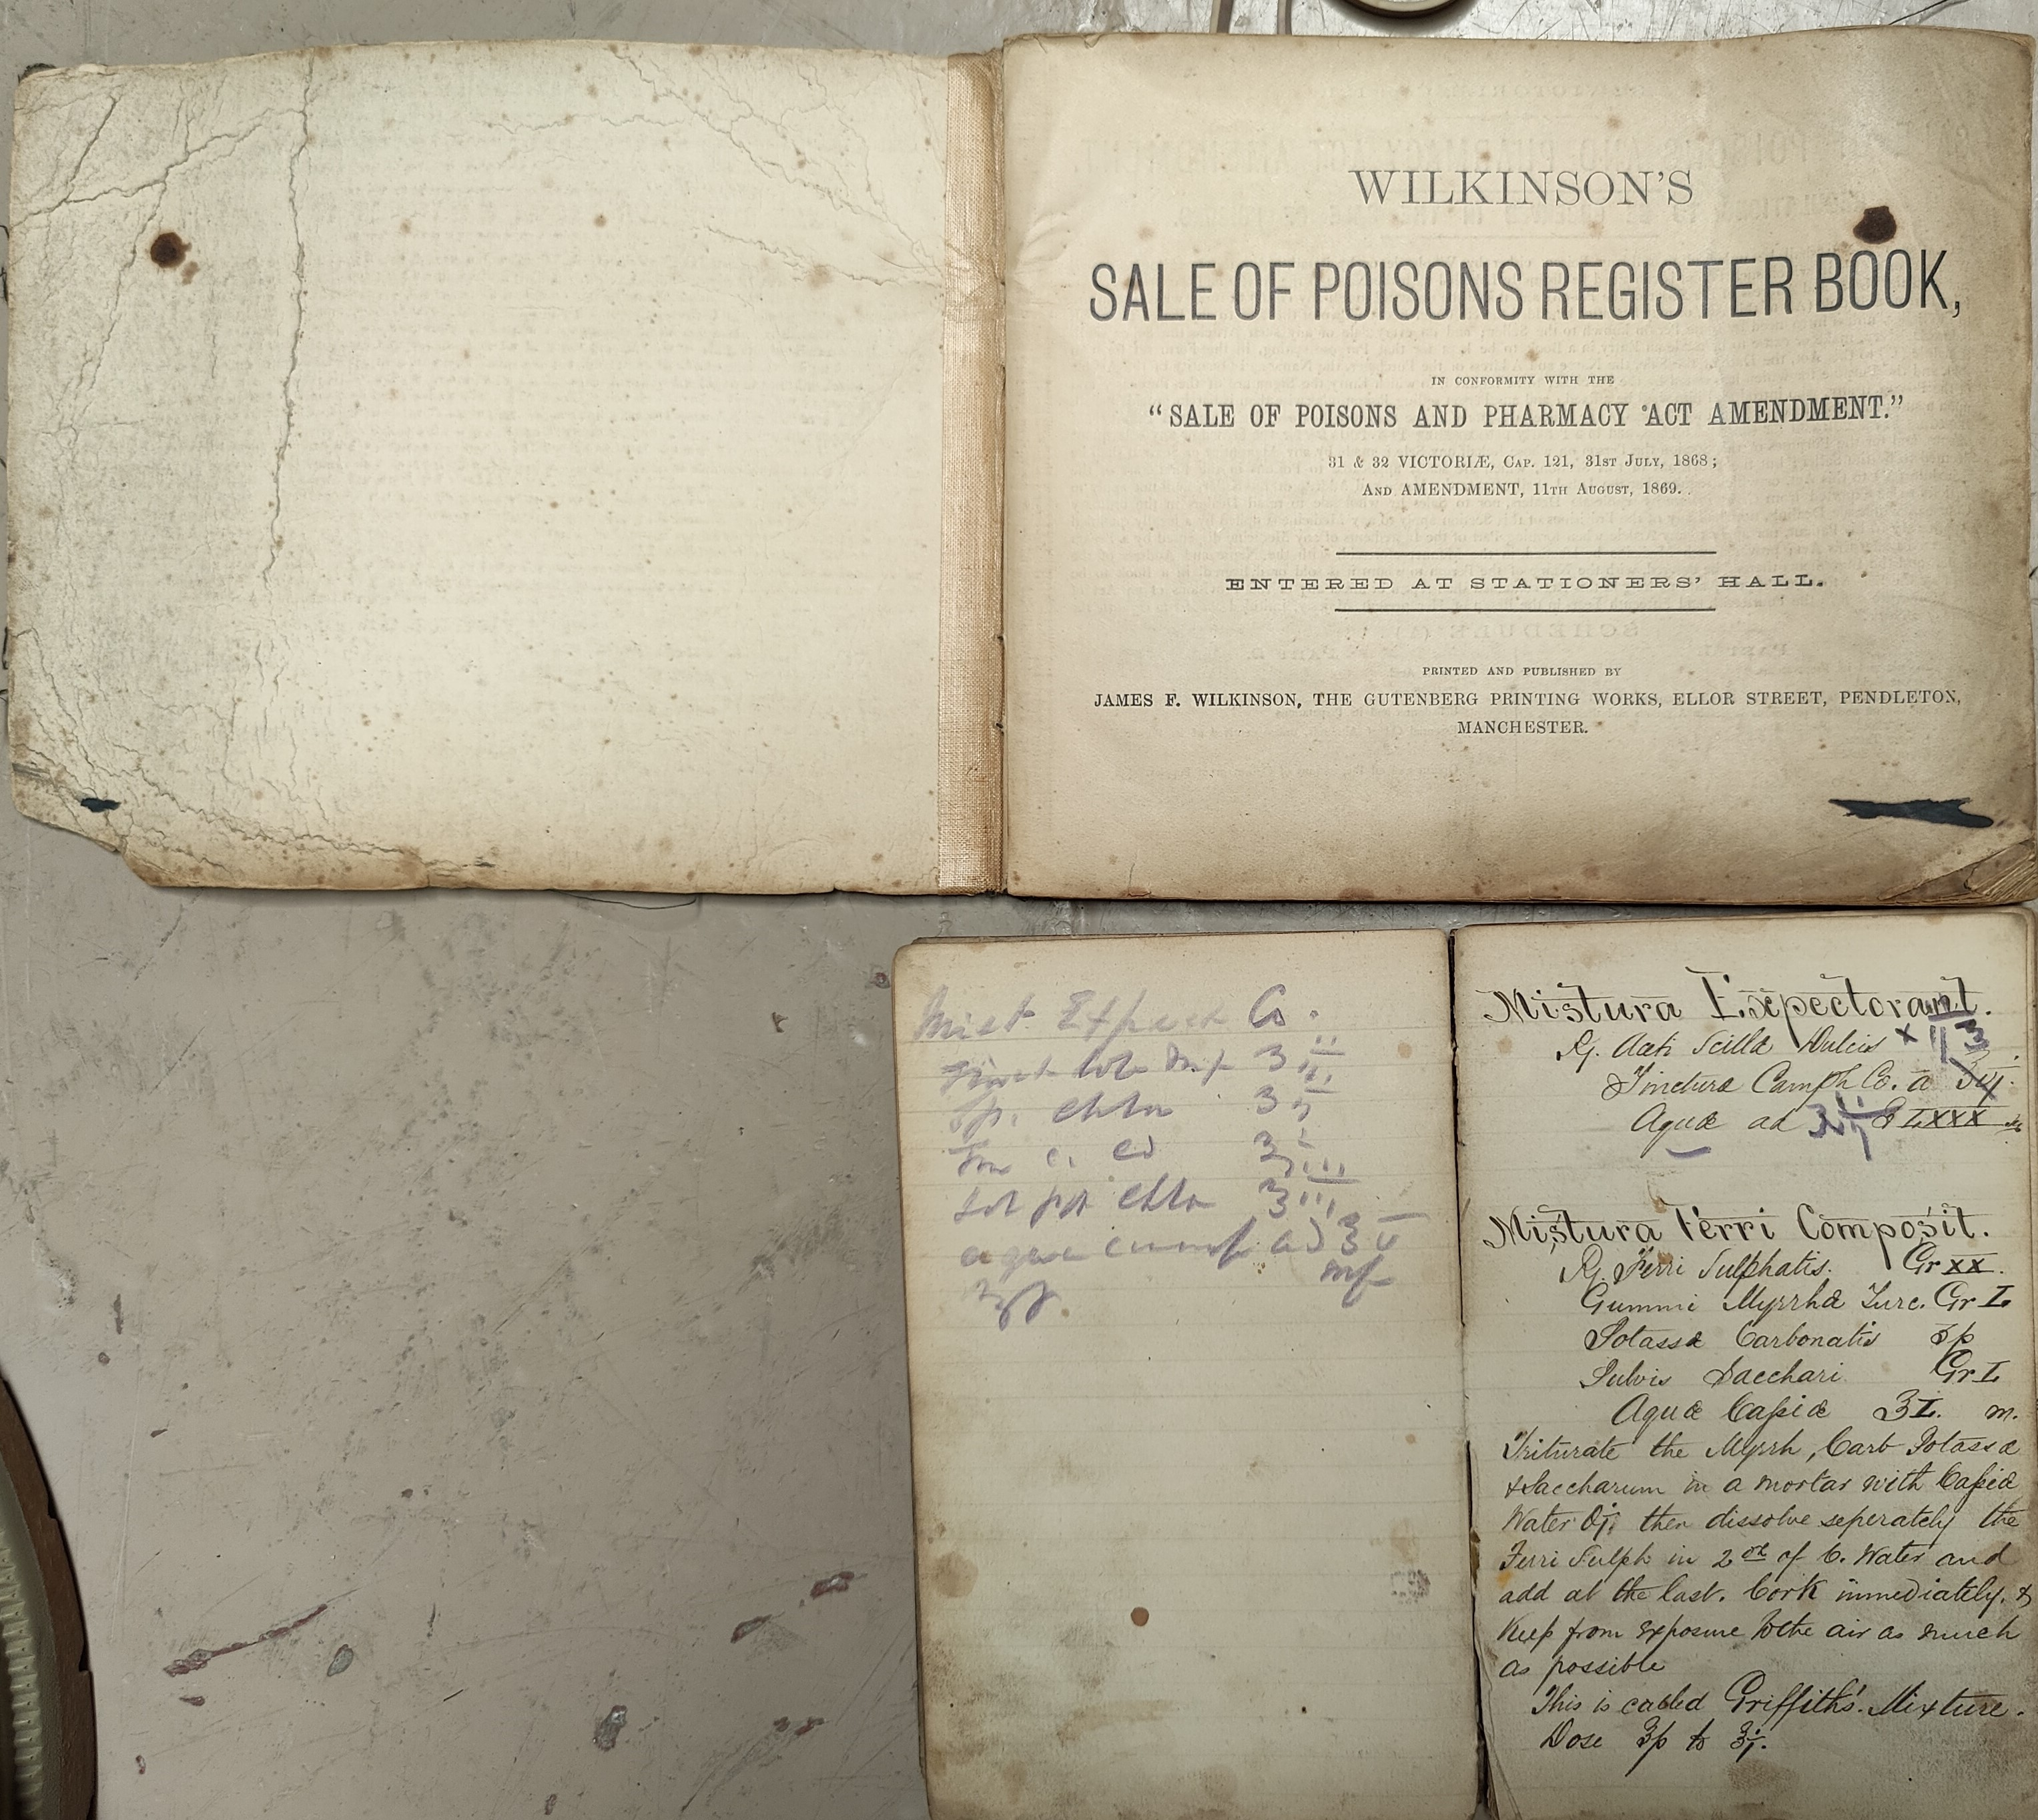 A 19th Century pharmacy receipt book, 29 LL and a poison register with entries starting 1904.